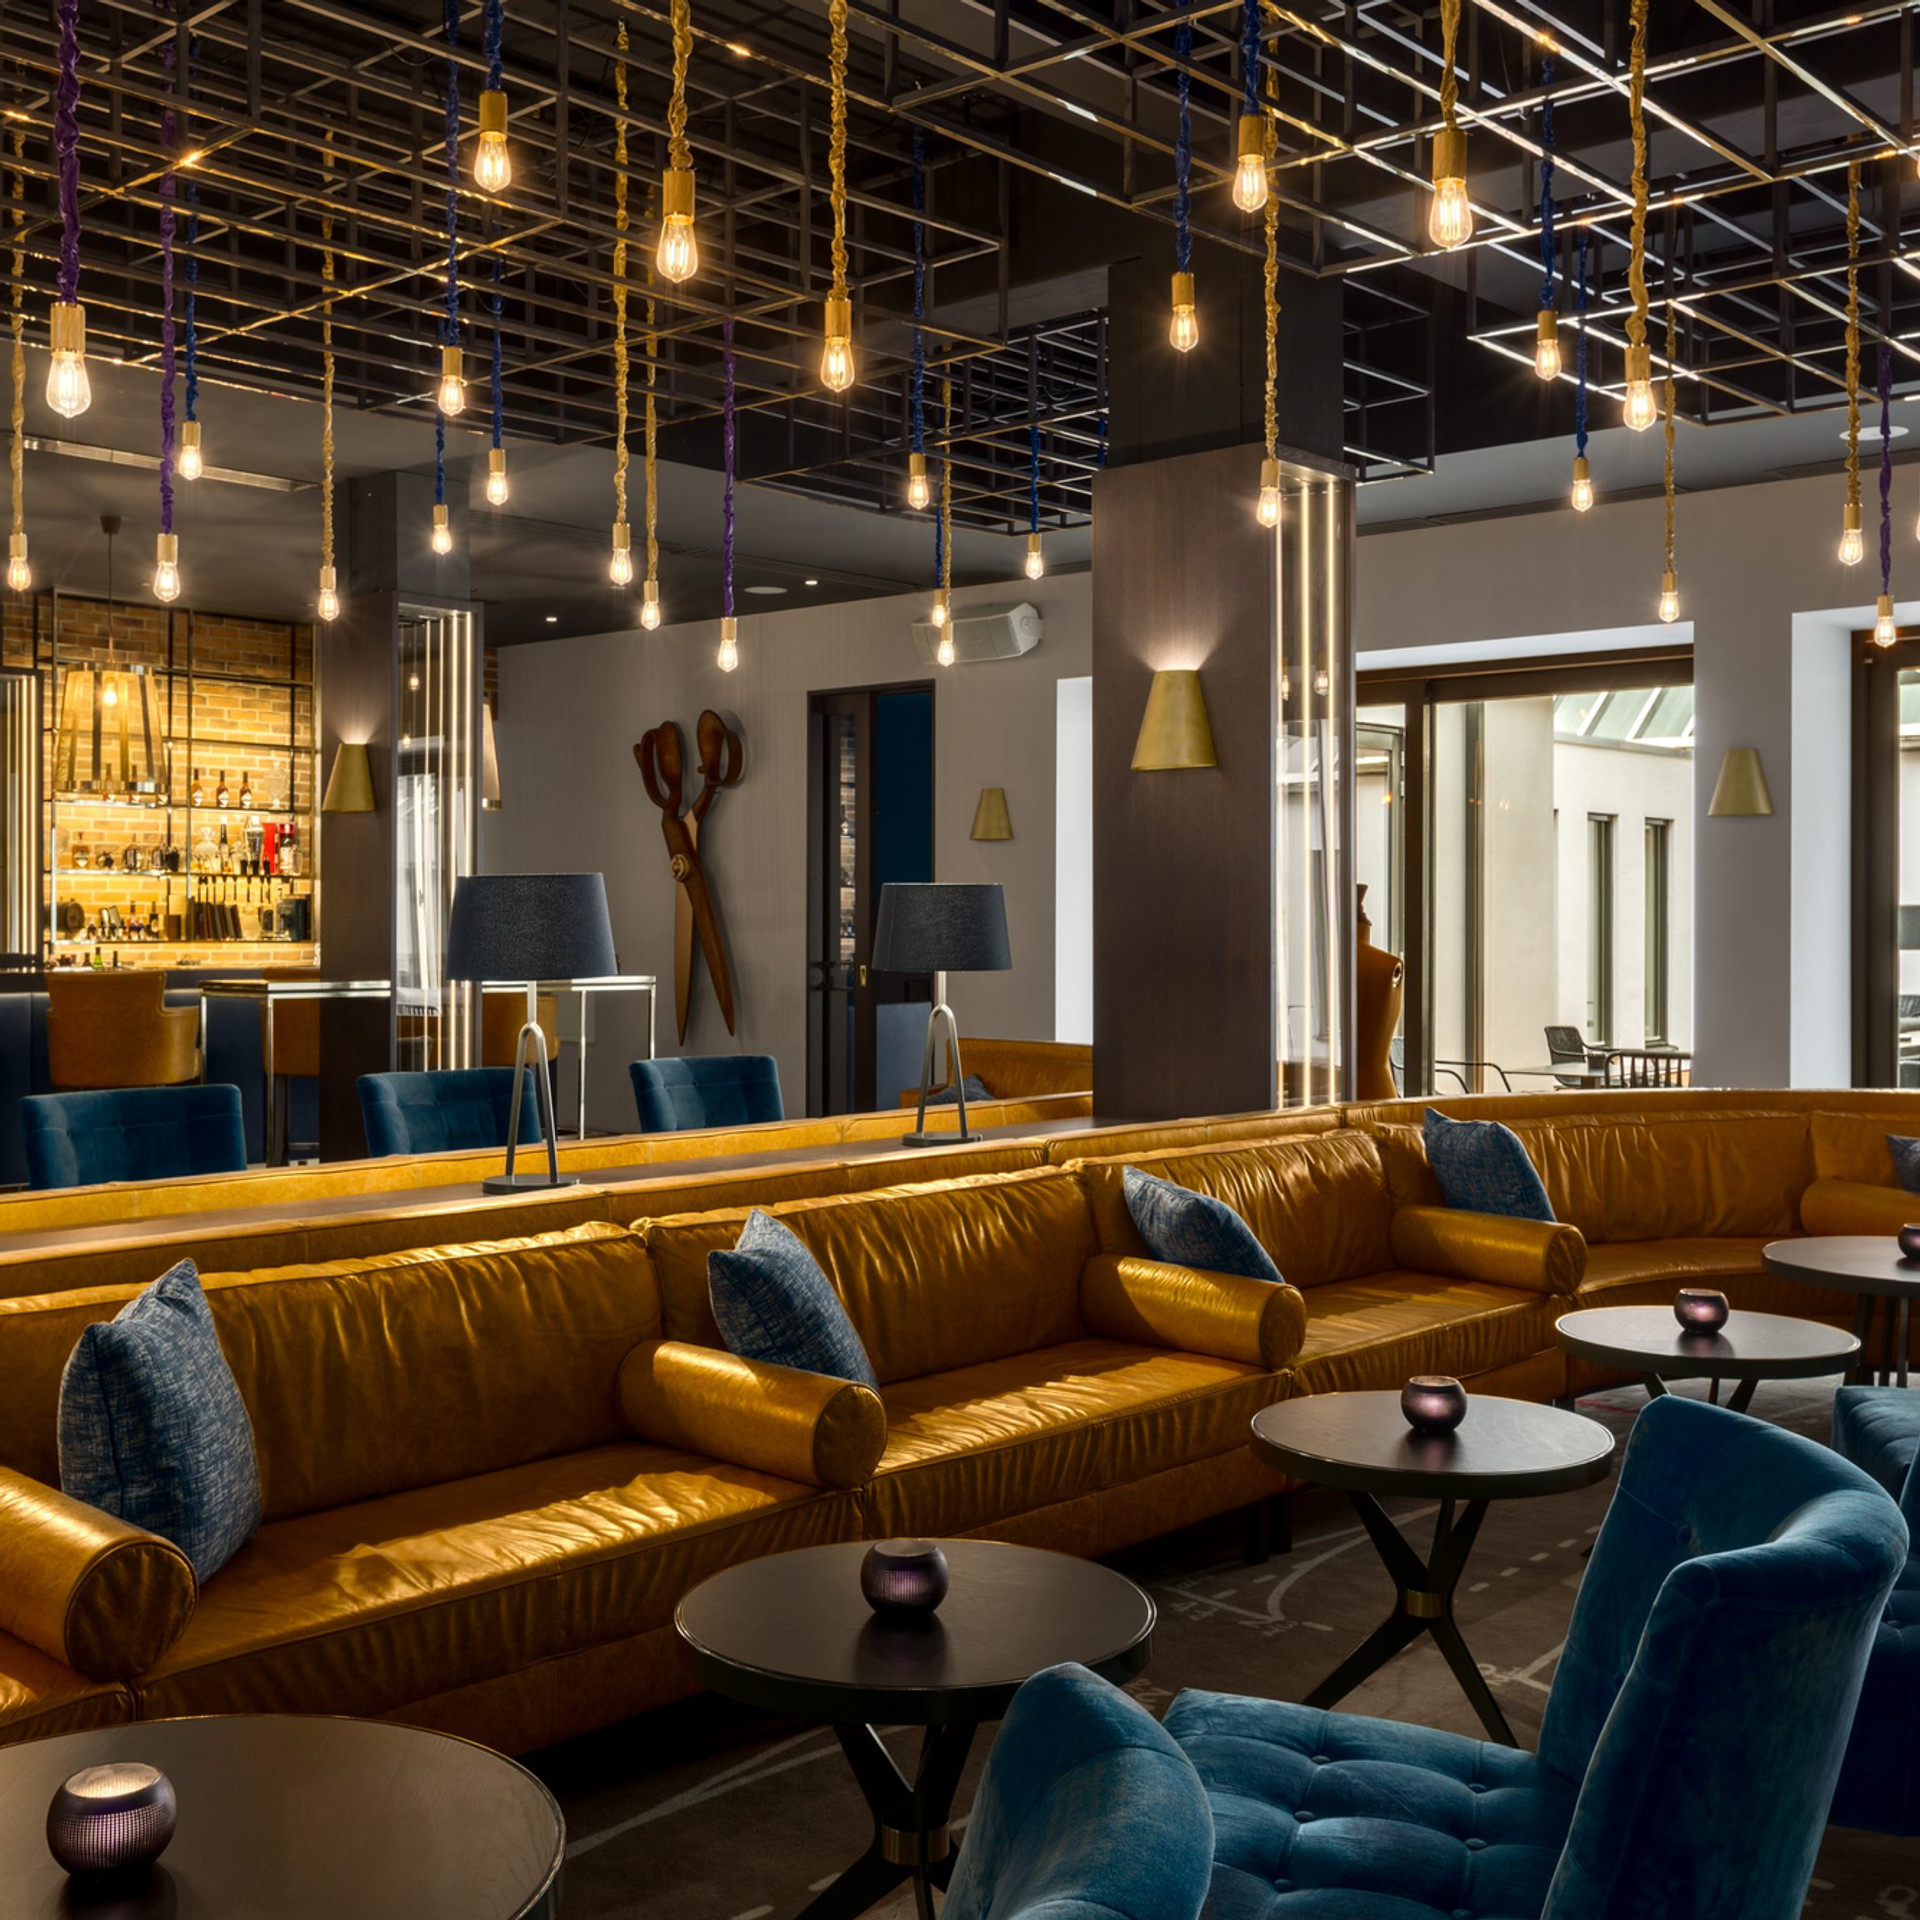 NH Collection Grand Hotel Krasnapolsky The Tailor - Large cocktail bar